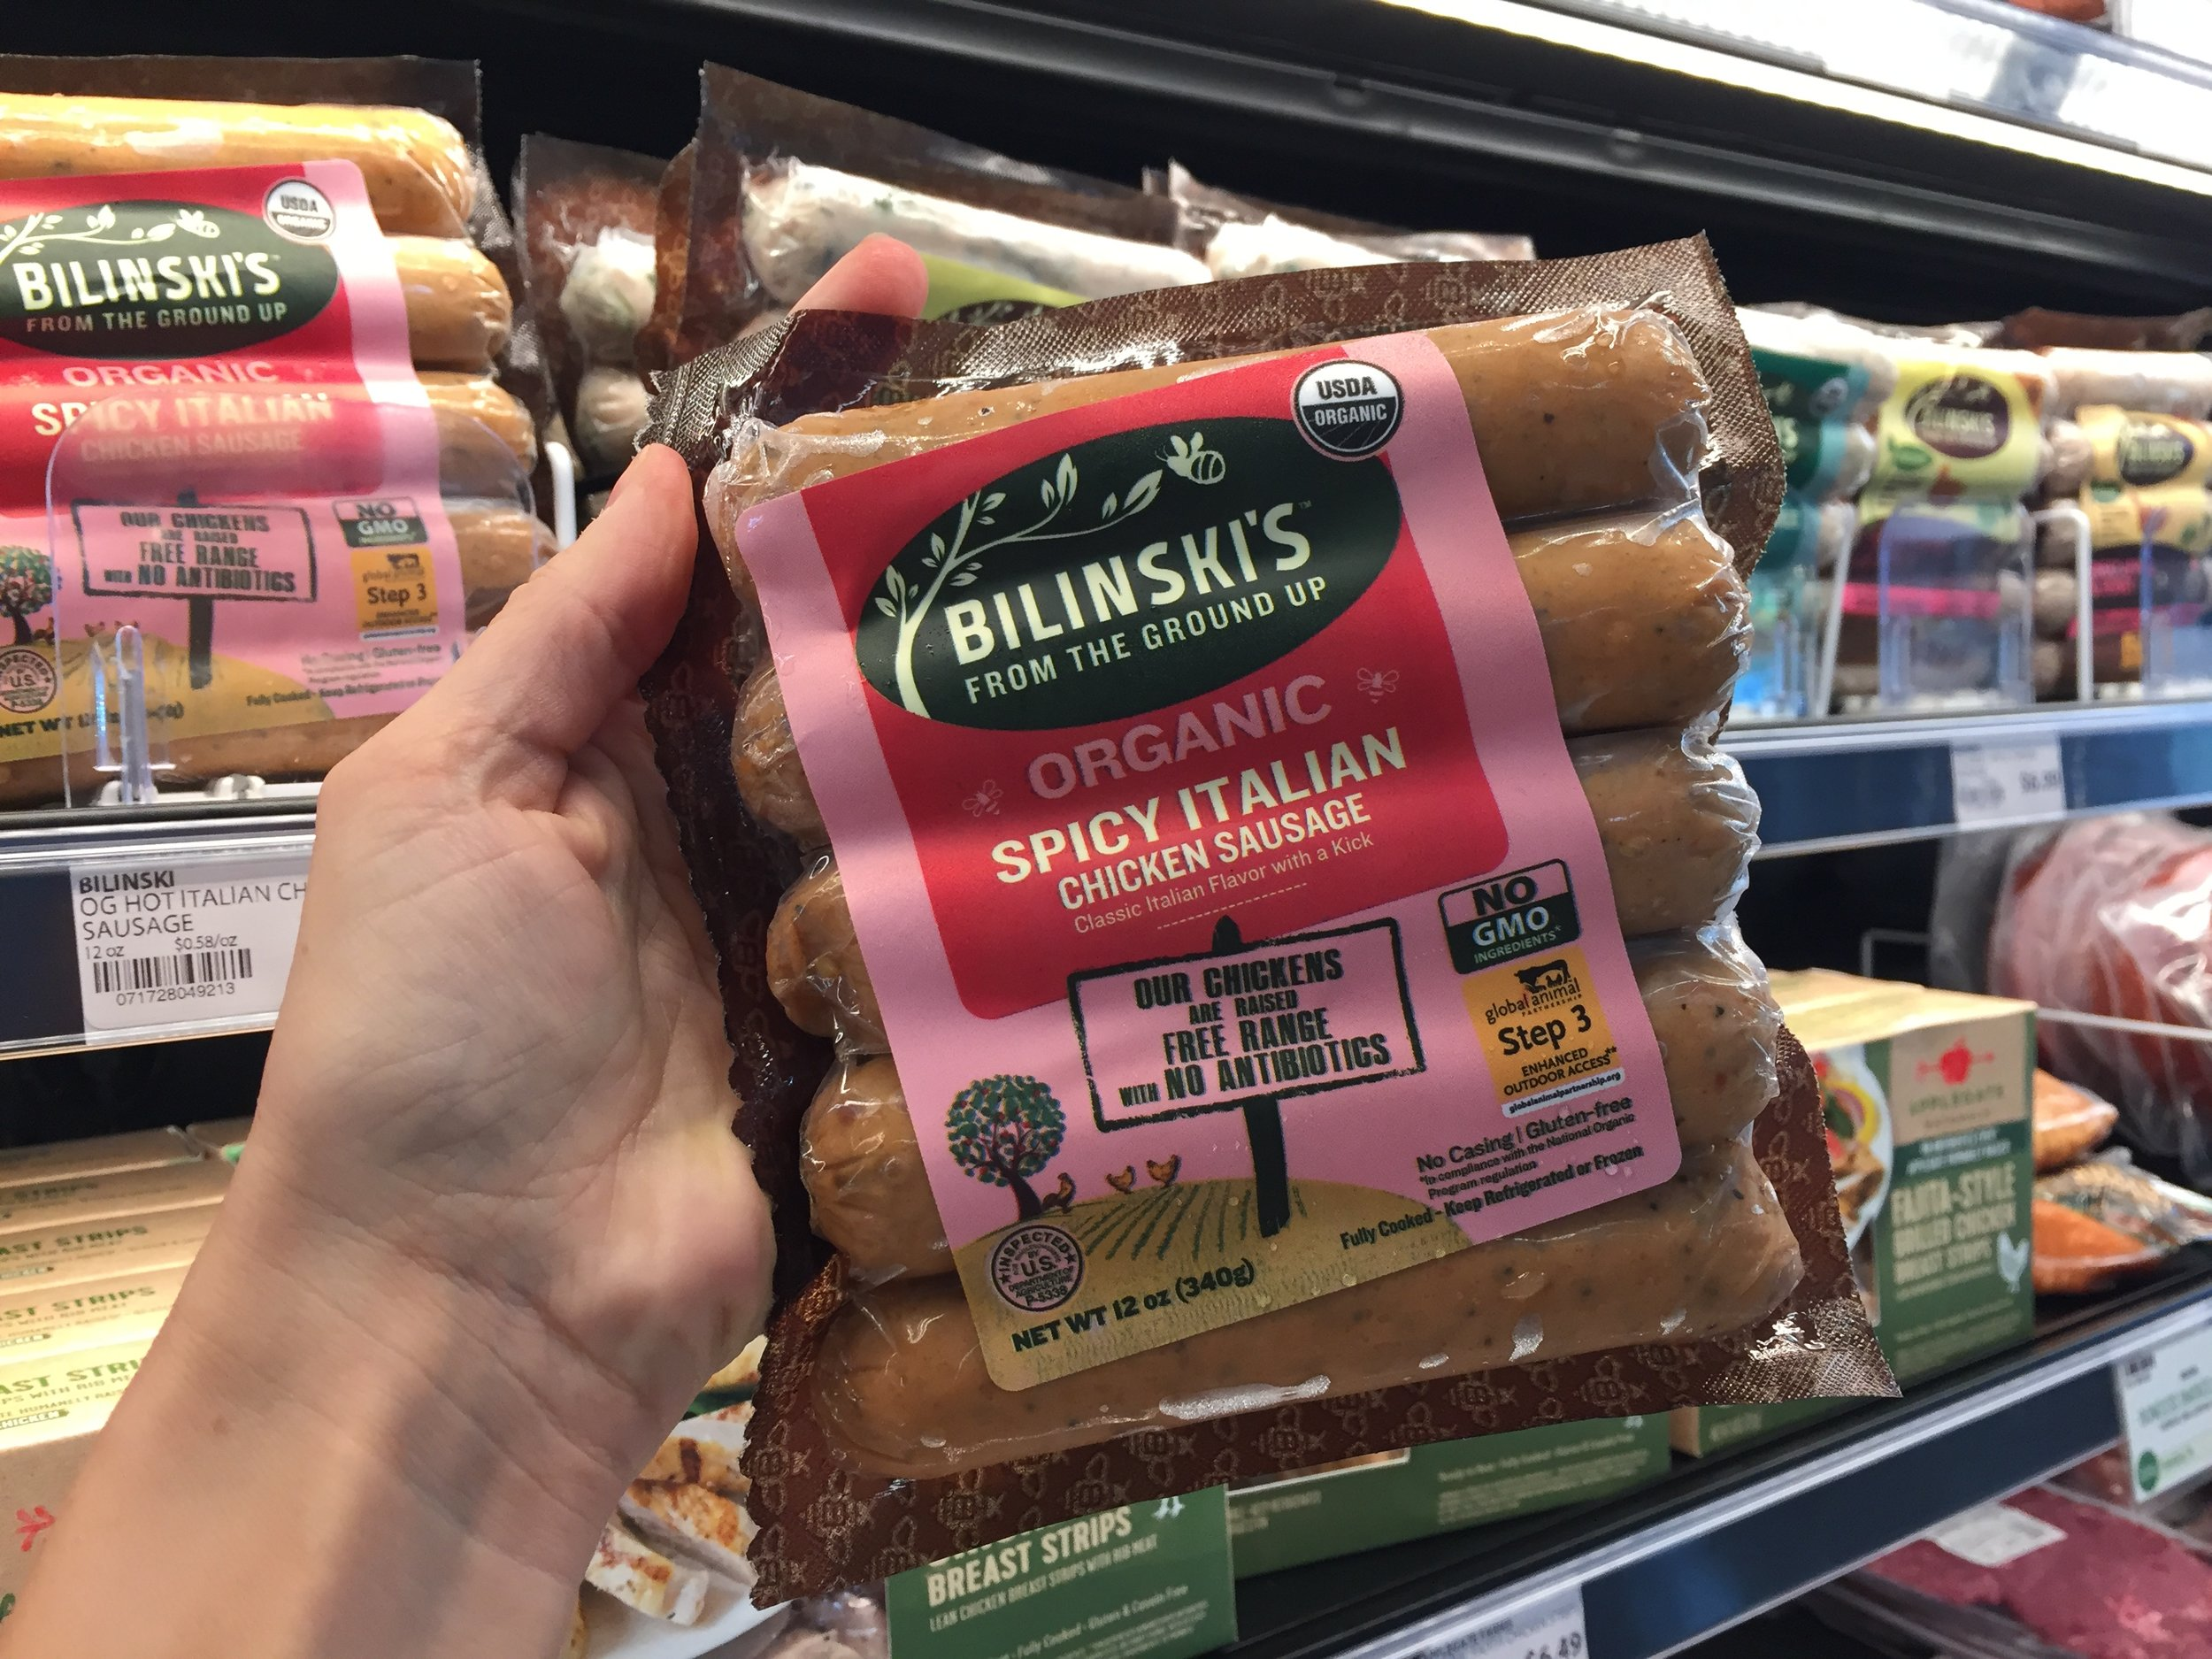 Excited to see the Global Animal Partnership label here, on Bilinski's chicken sausage. That's the label I look for to buy higher welfare meats.